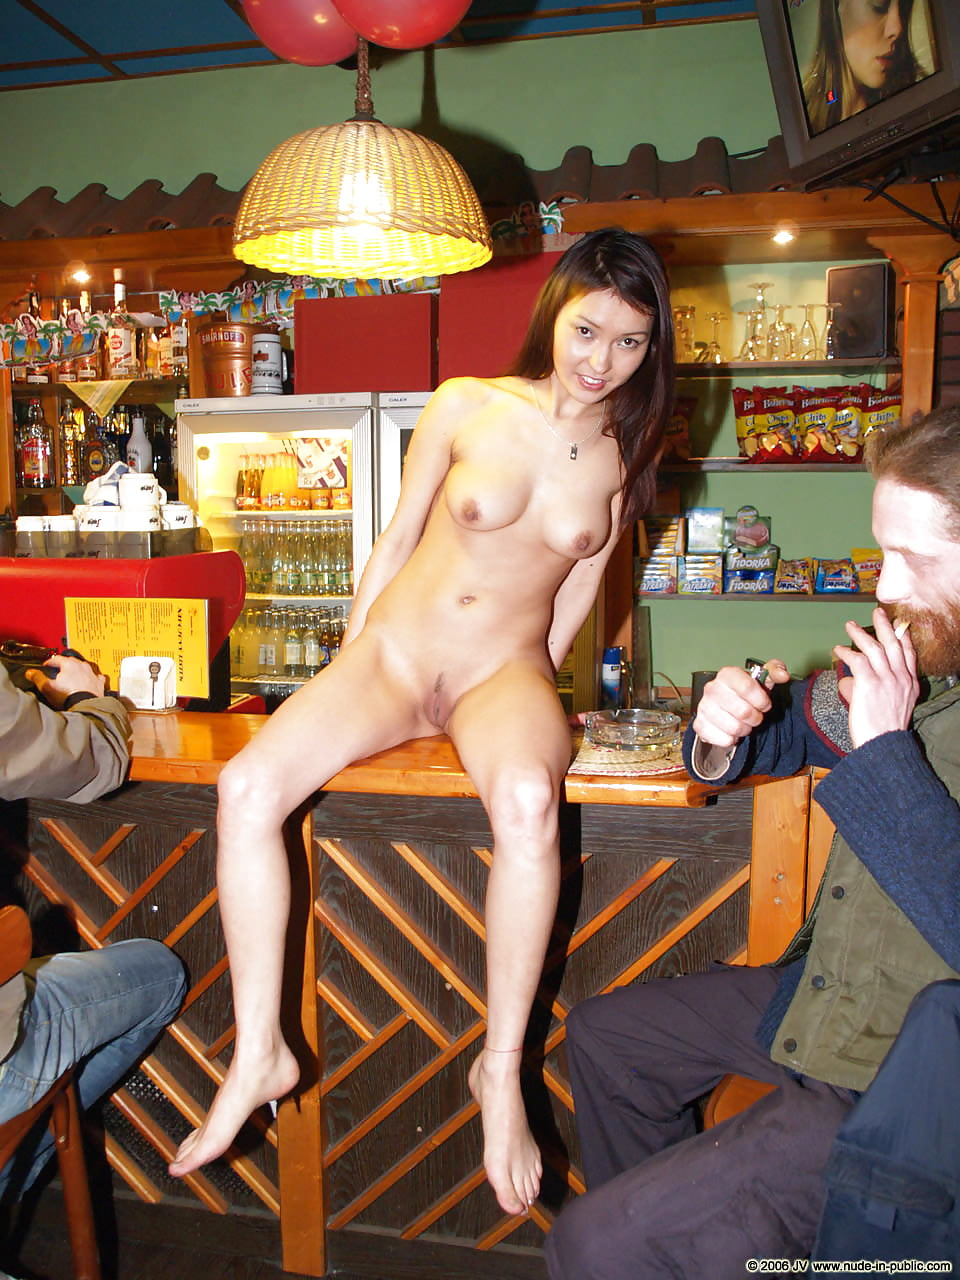 Wife naked in public bar